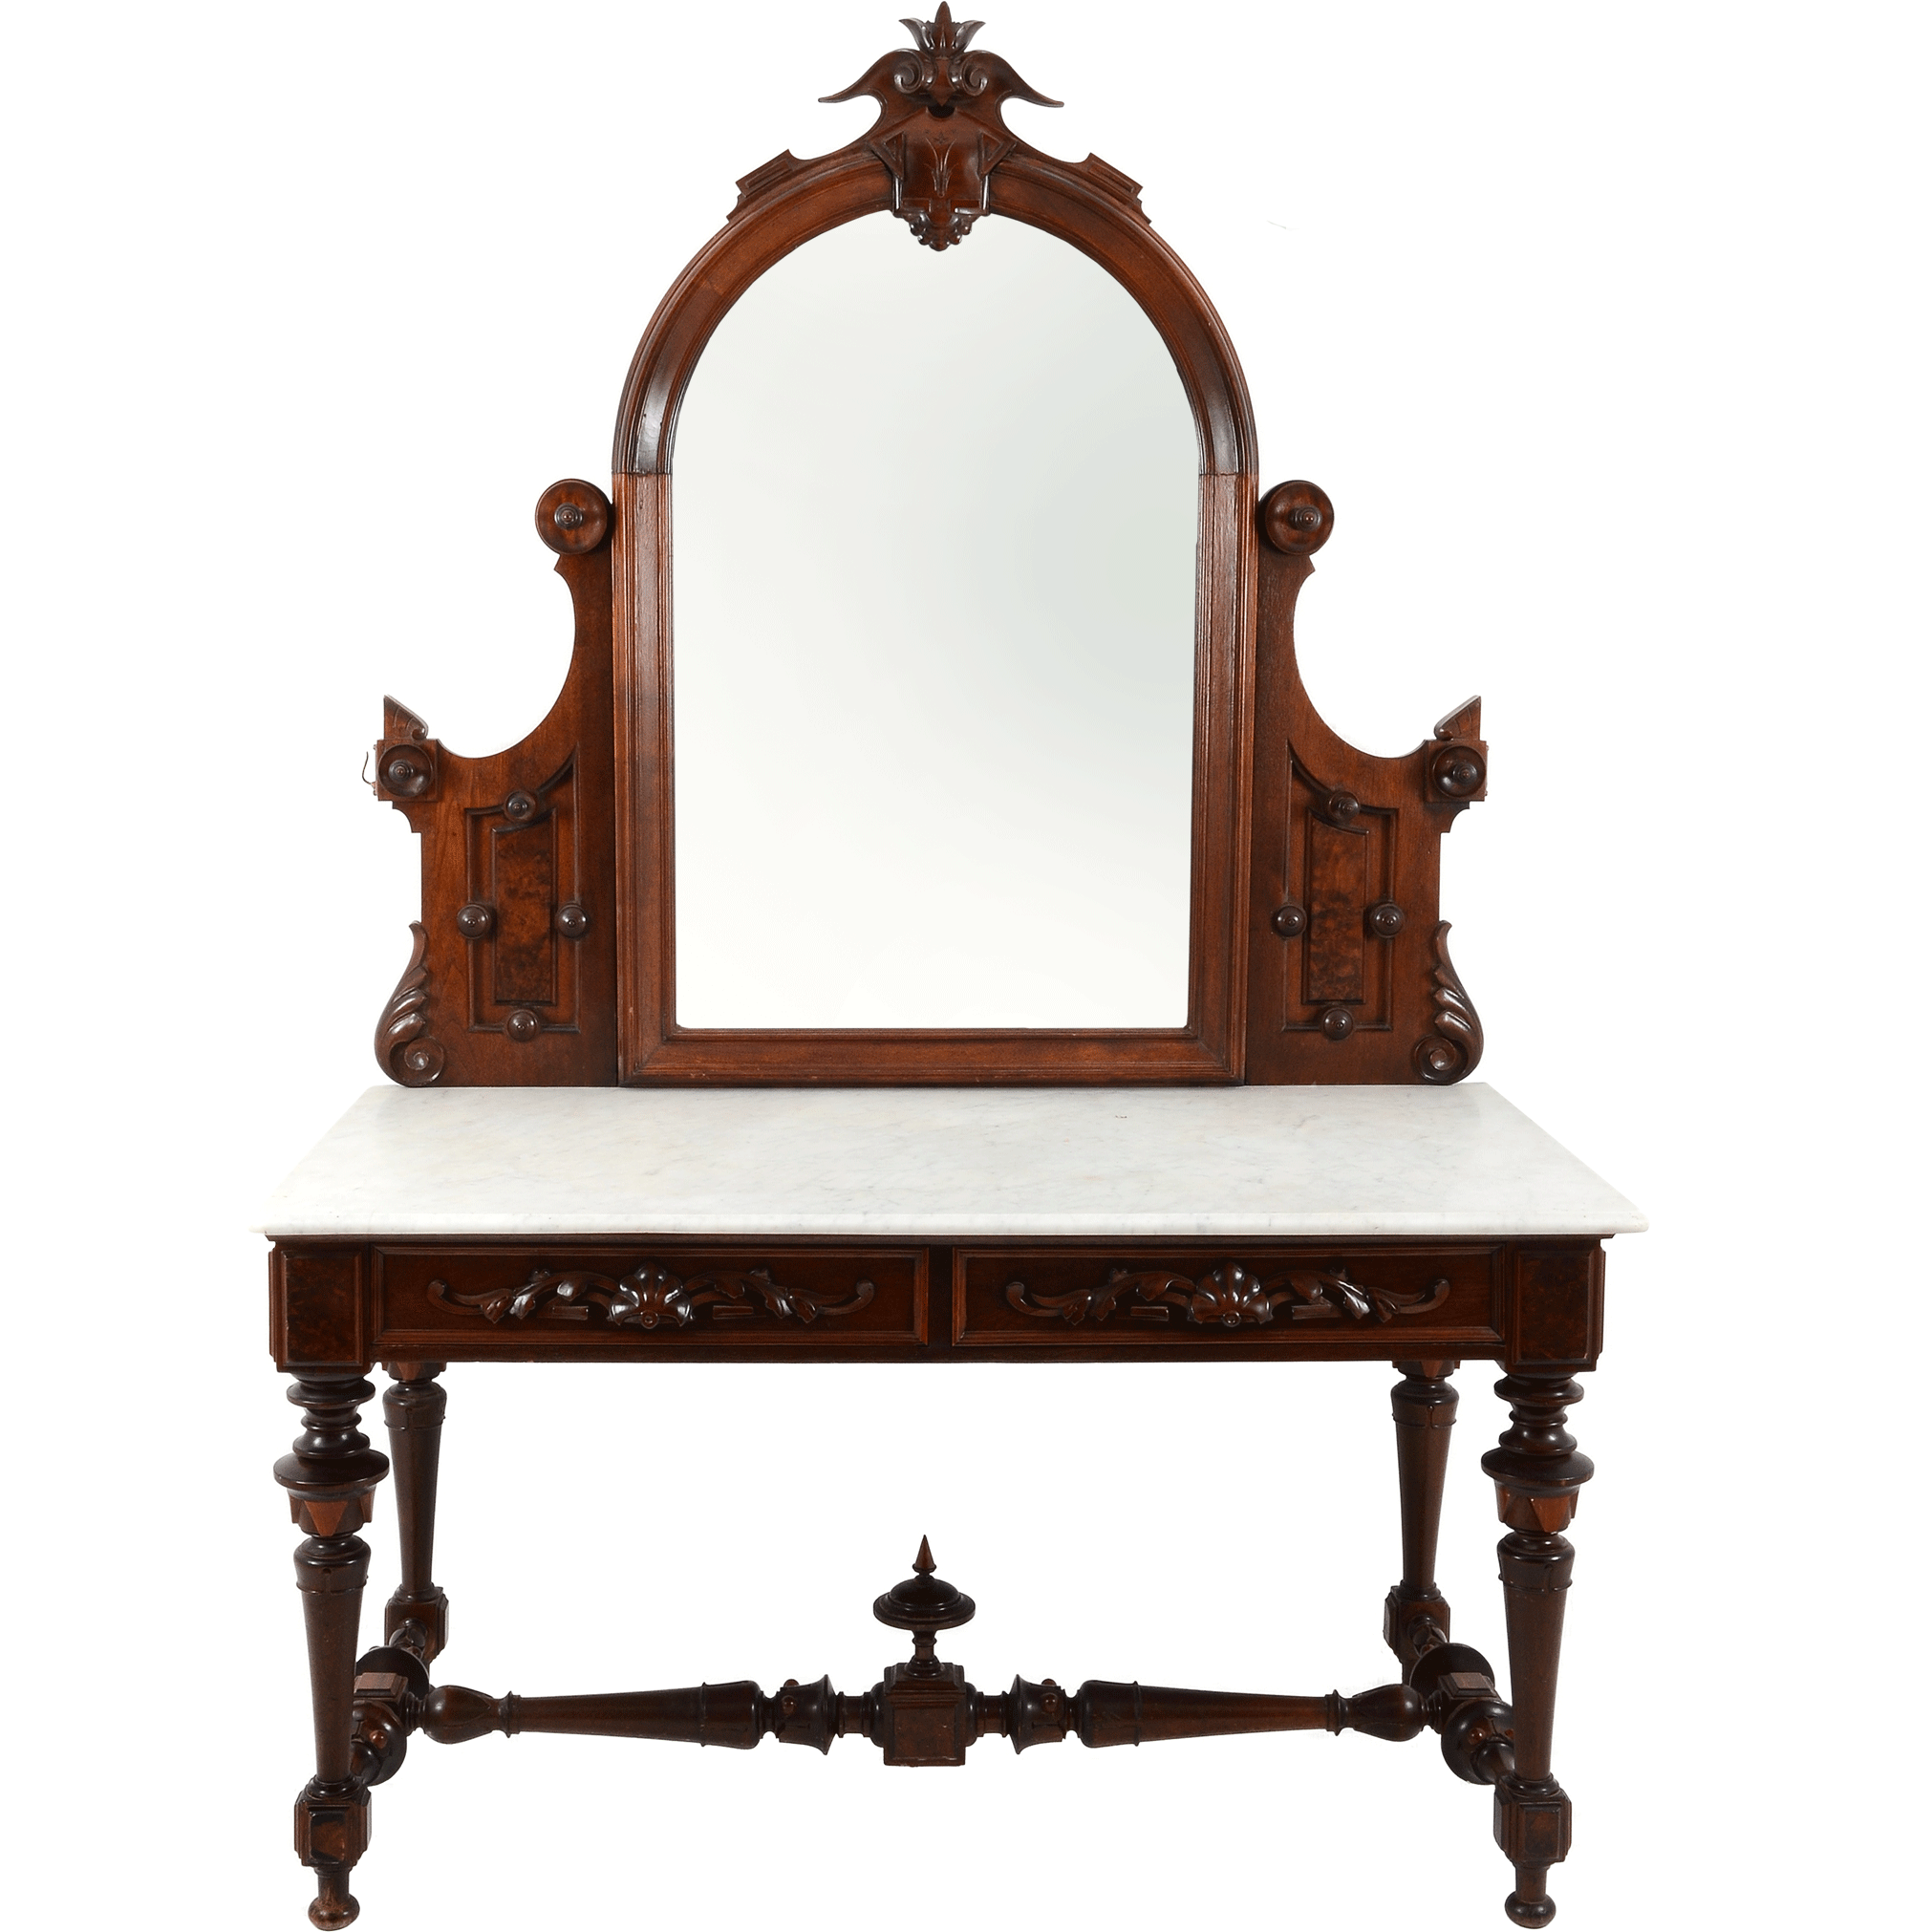 European Renaissance Revival Style Console and Mirror